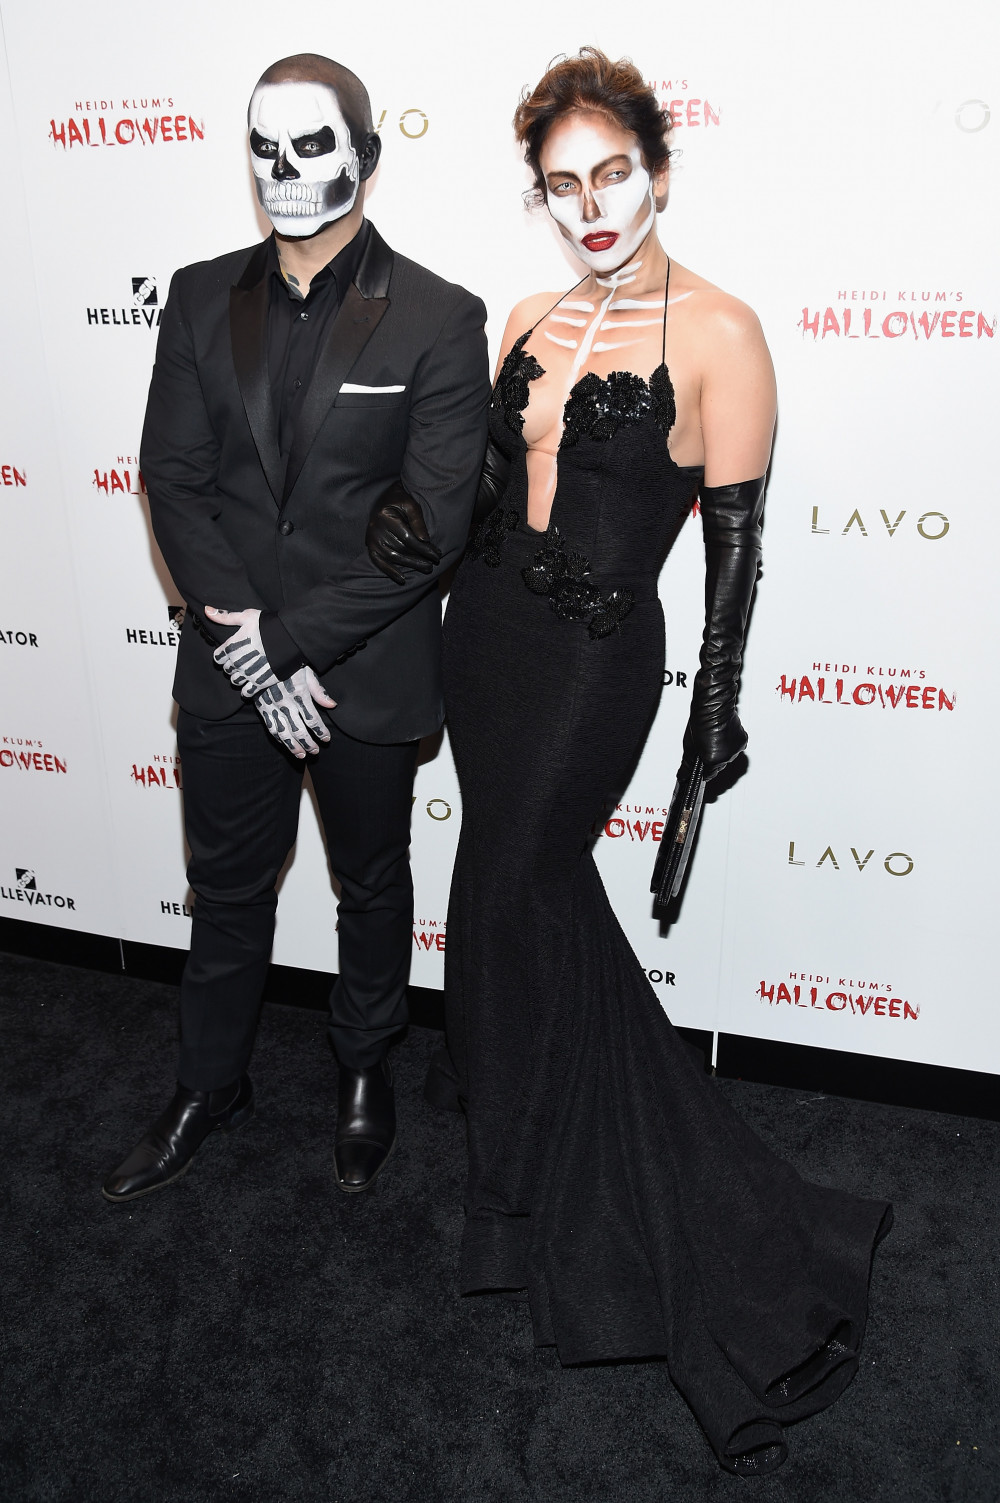 NEW YORK, NY - OCTOBER 31: Casper Smart and Jennifer Lopez attend Heidi Klum's 16th Annual Halloween Party sponsored by GSN's Hellevator And SVEDKA Vodka At LAVO New York on October 31, 2015 in New York City. (Photo by Nicholas Hunt/Getty Images for Heidi Klum)